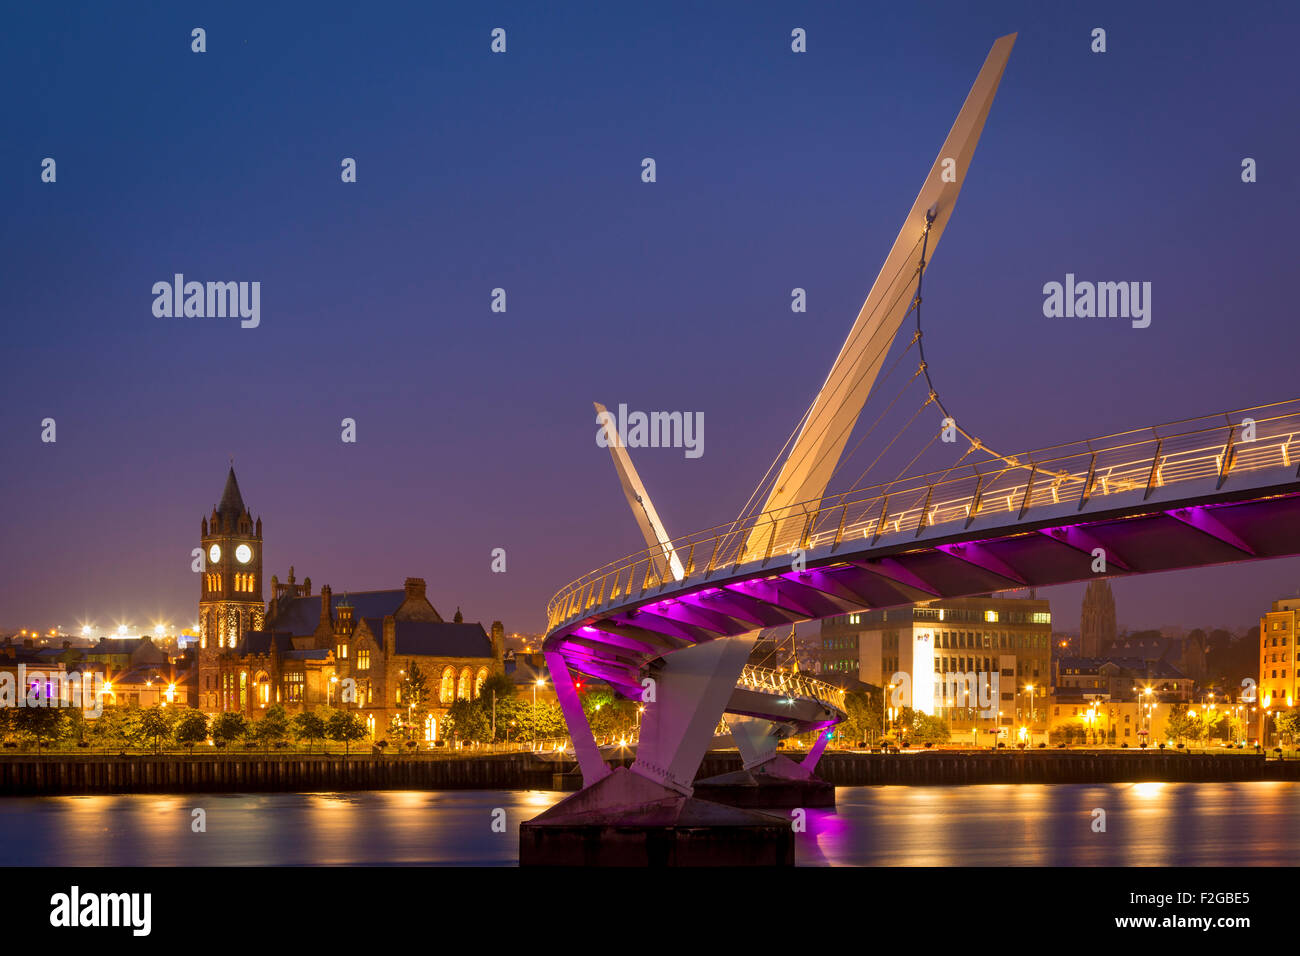 Twilight over the Peace Bridge and skyline of Londonderry/Derry, County Londonderry, Northern Ireland, UK - Stock Image